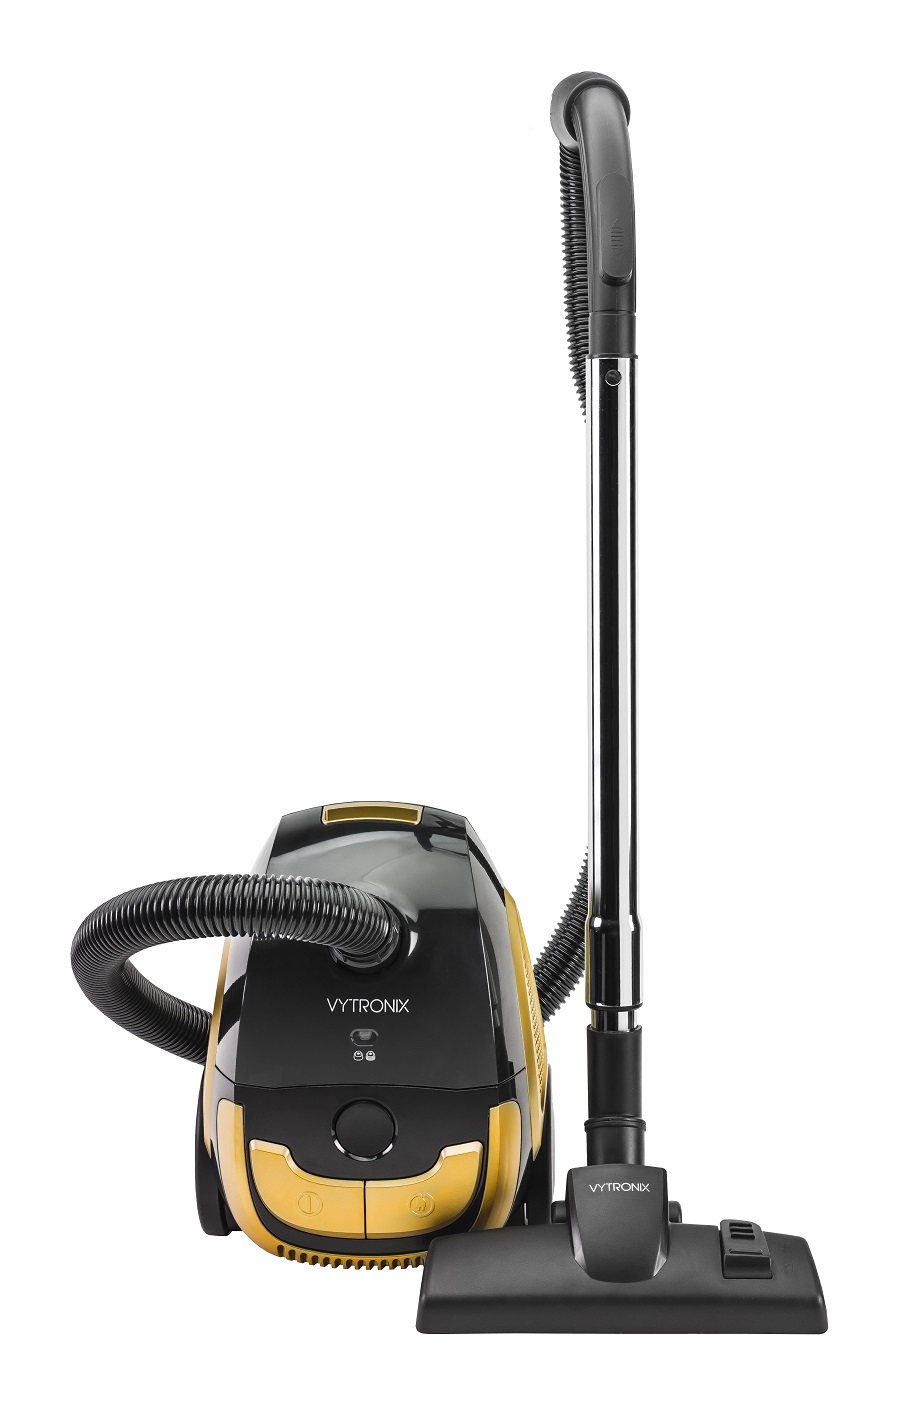 VYTRONIX-Cheap-Compact-Powerful-Suction-Bagged-Cylinder-Vacuum-Cleaner-Hoover